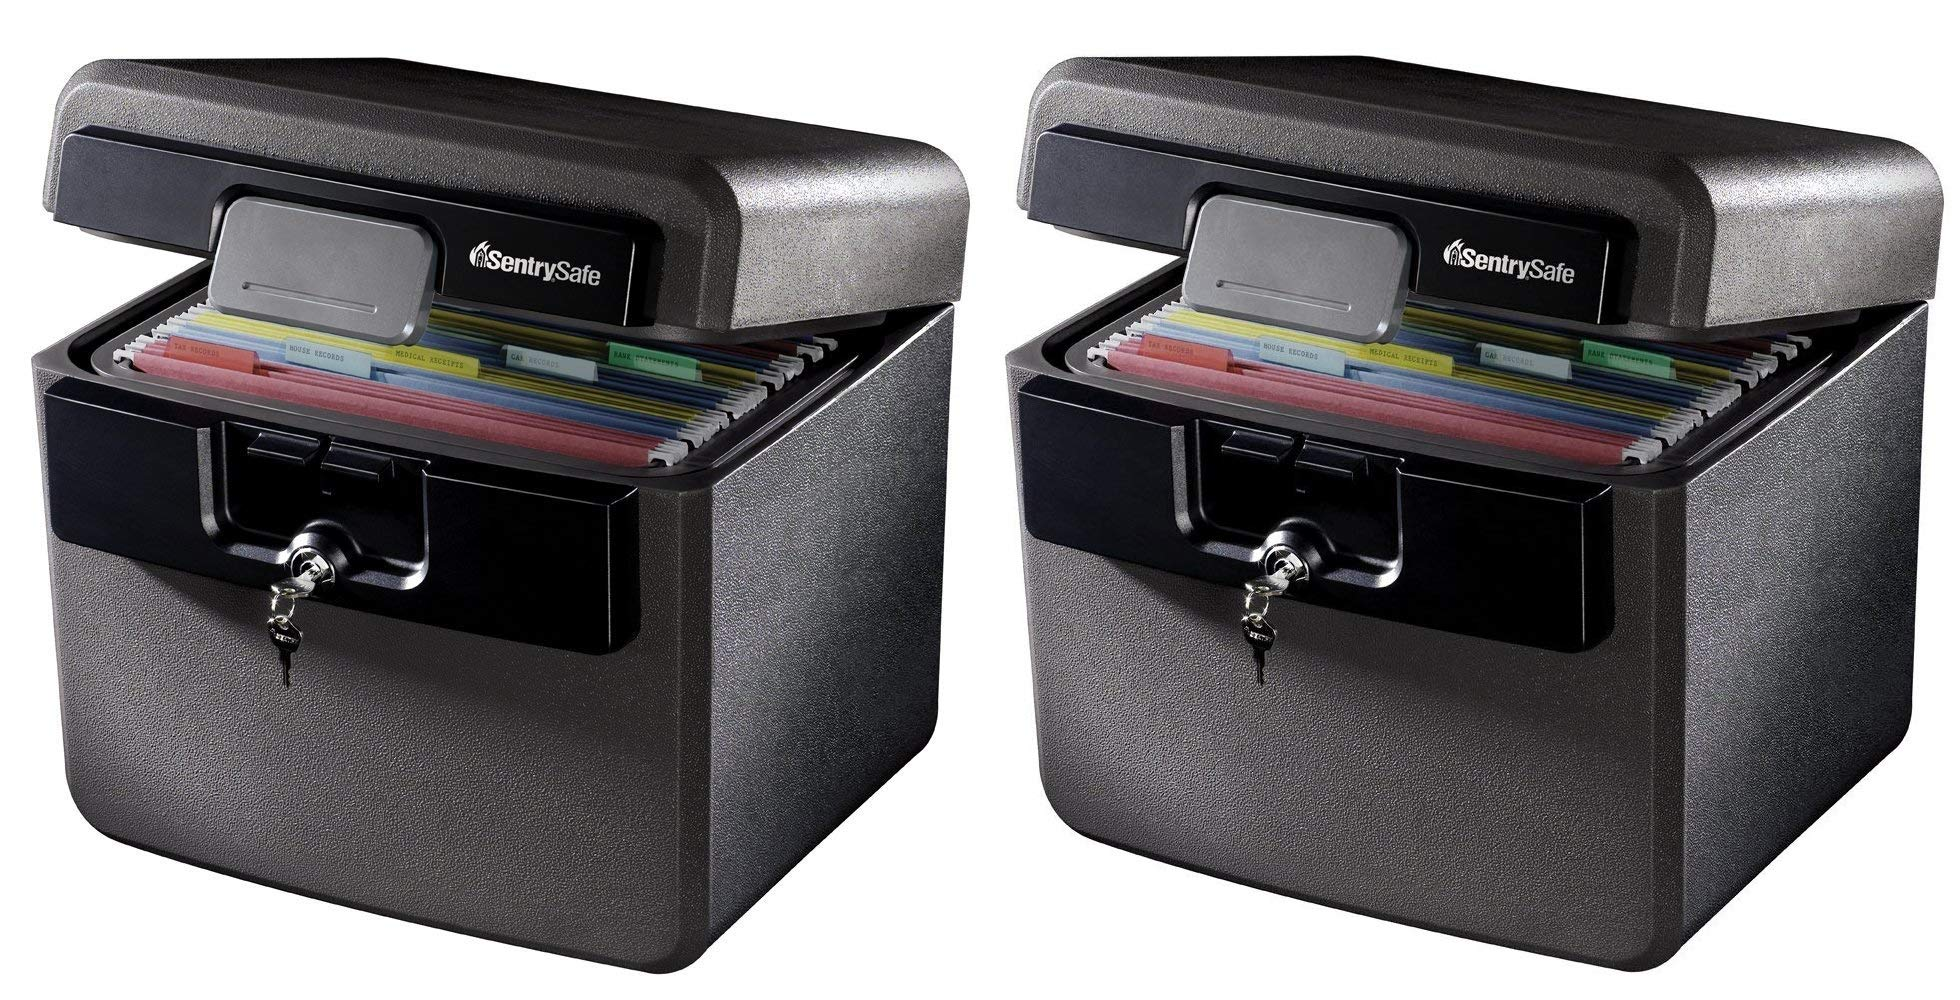 SentrySafe HD4100 Fireproof Safe and Waterproof Safe with Key Lock 0.65 Cubic Feet (Pack of 2) by SentrySafe